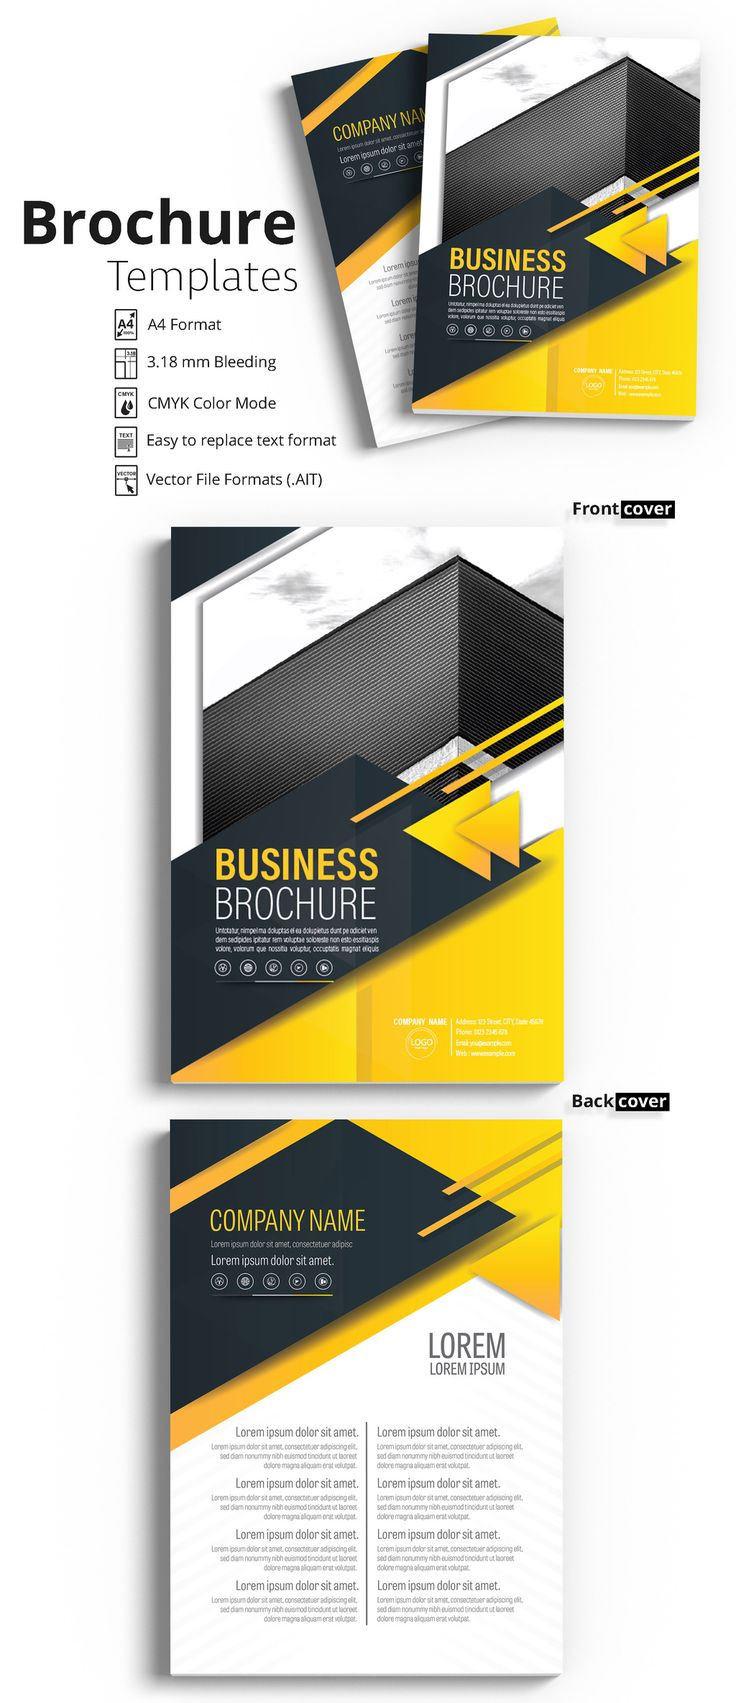 Brochure Cover Layout with Yellow and Gray Accents 1 - image | Adobe Stock #Brochure #Business #Proposal #Booklet #Flyer #Template #Design #Layout #Cover #Book #Booklet #A4 #Annual #Report| Brochure template | Brochure design template | Flyers | Template | Brochures | Flyer Background | Background design | Business Proposal | Proposal Design | Booklet | Professional | Professional - Proposal - Brochure - Template